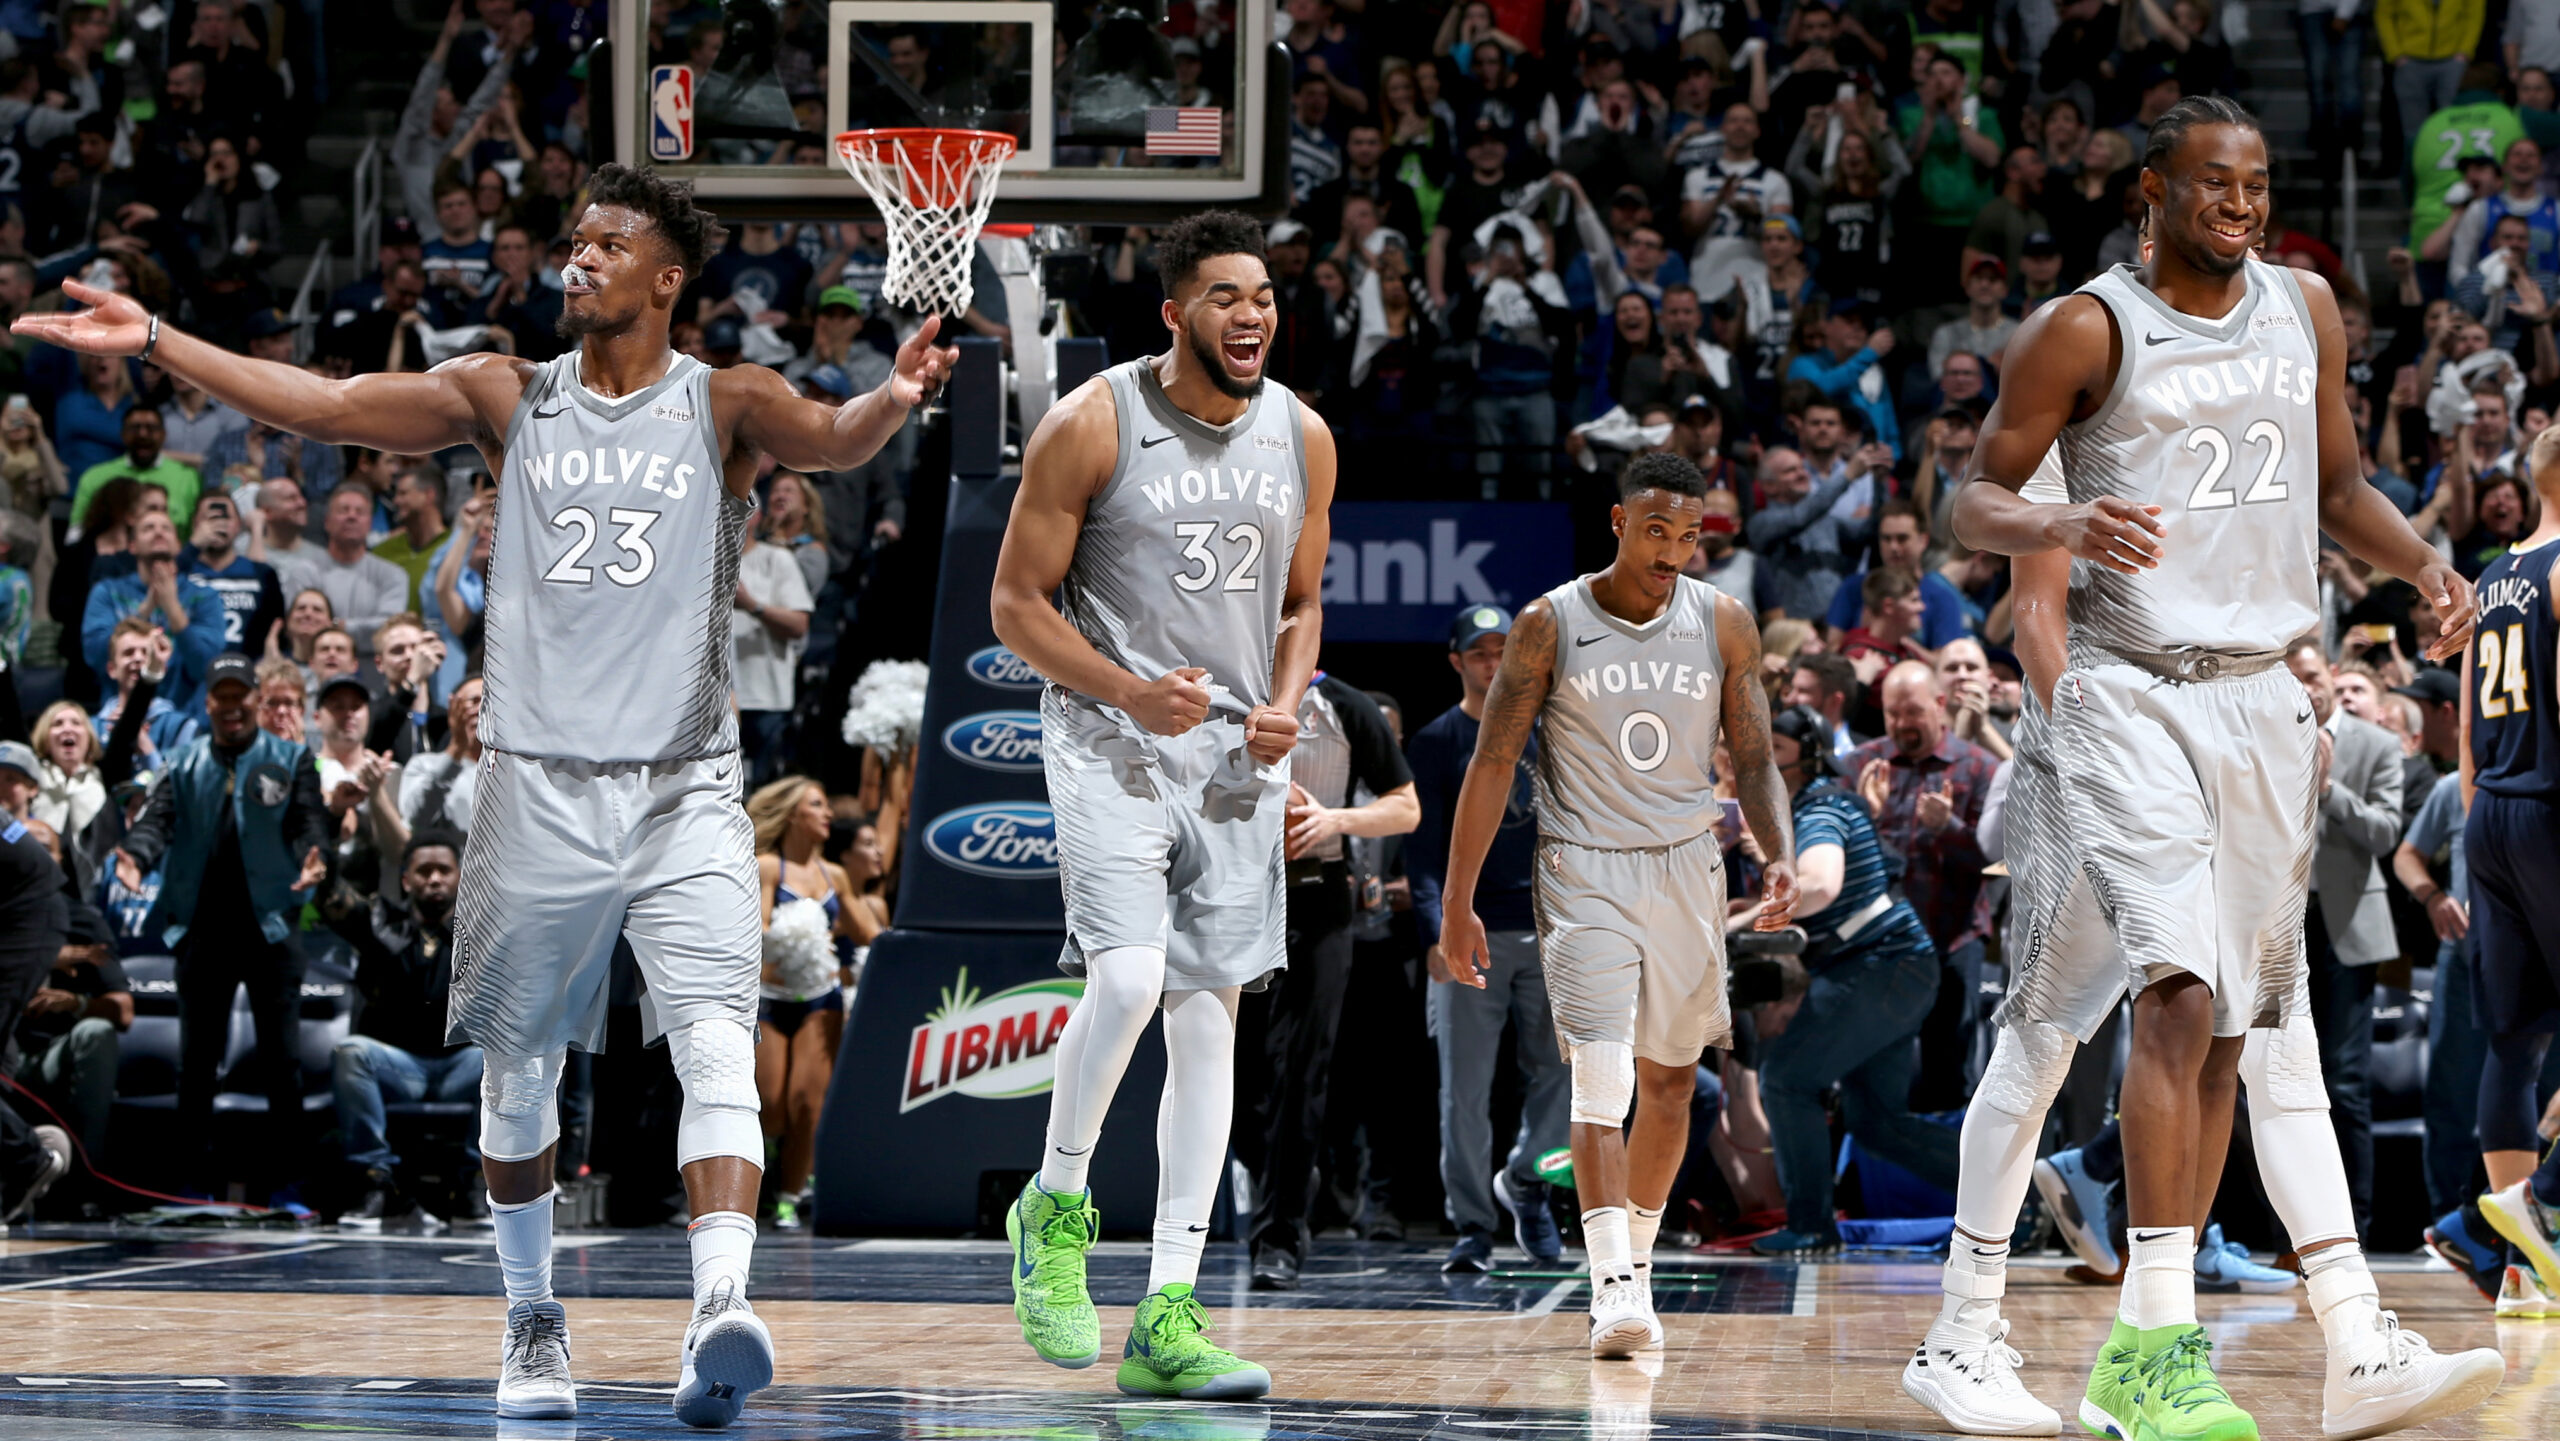 On this date in 2018: Wolves win 'Play-In game' vs. Nuggets